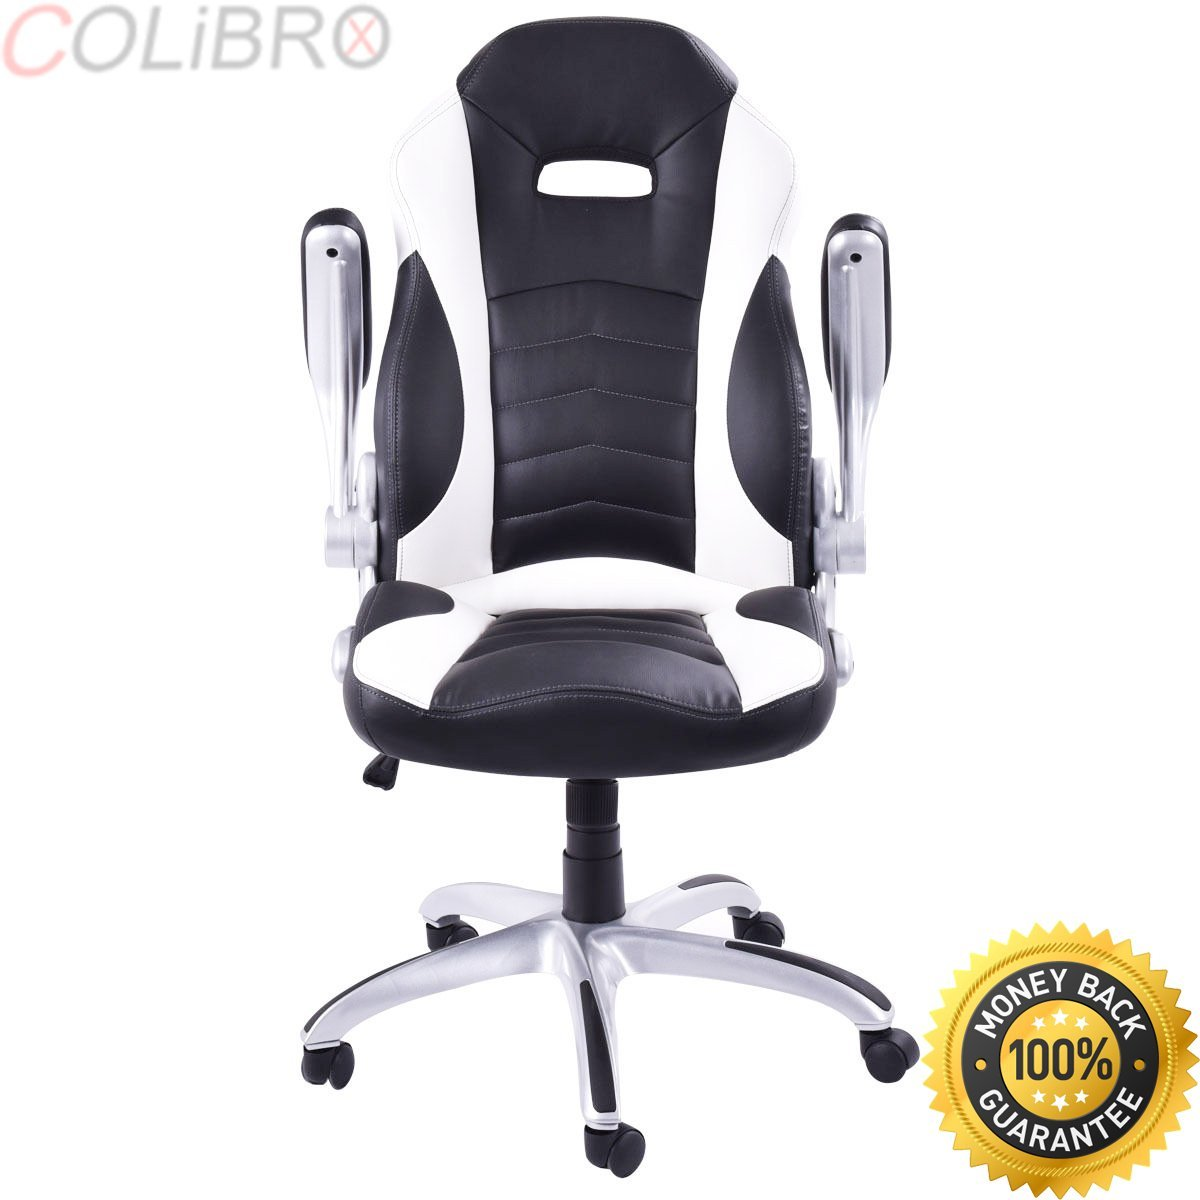 COLIBROX--New PU Leather Executive Racing Style Bucket Seat Office Desk Chair Gaming Chair. high back race car style bucket seat office desk chair gaming chair. bucket seat office chair diy amazon.